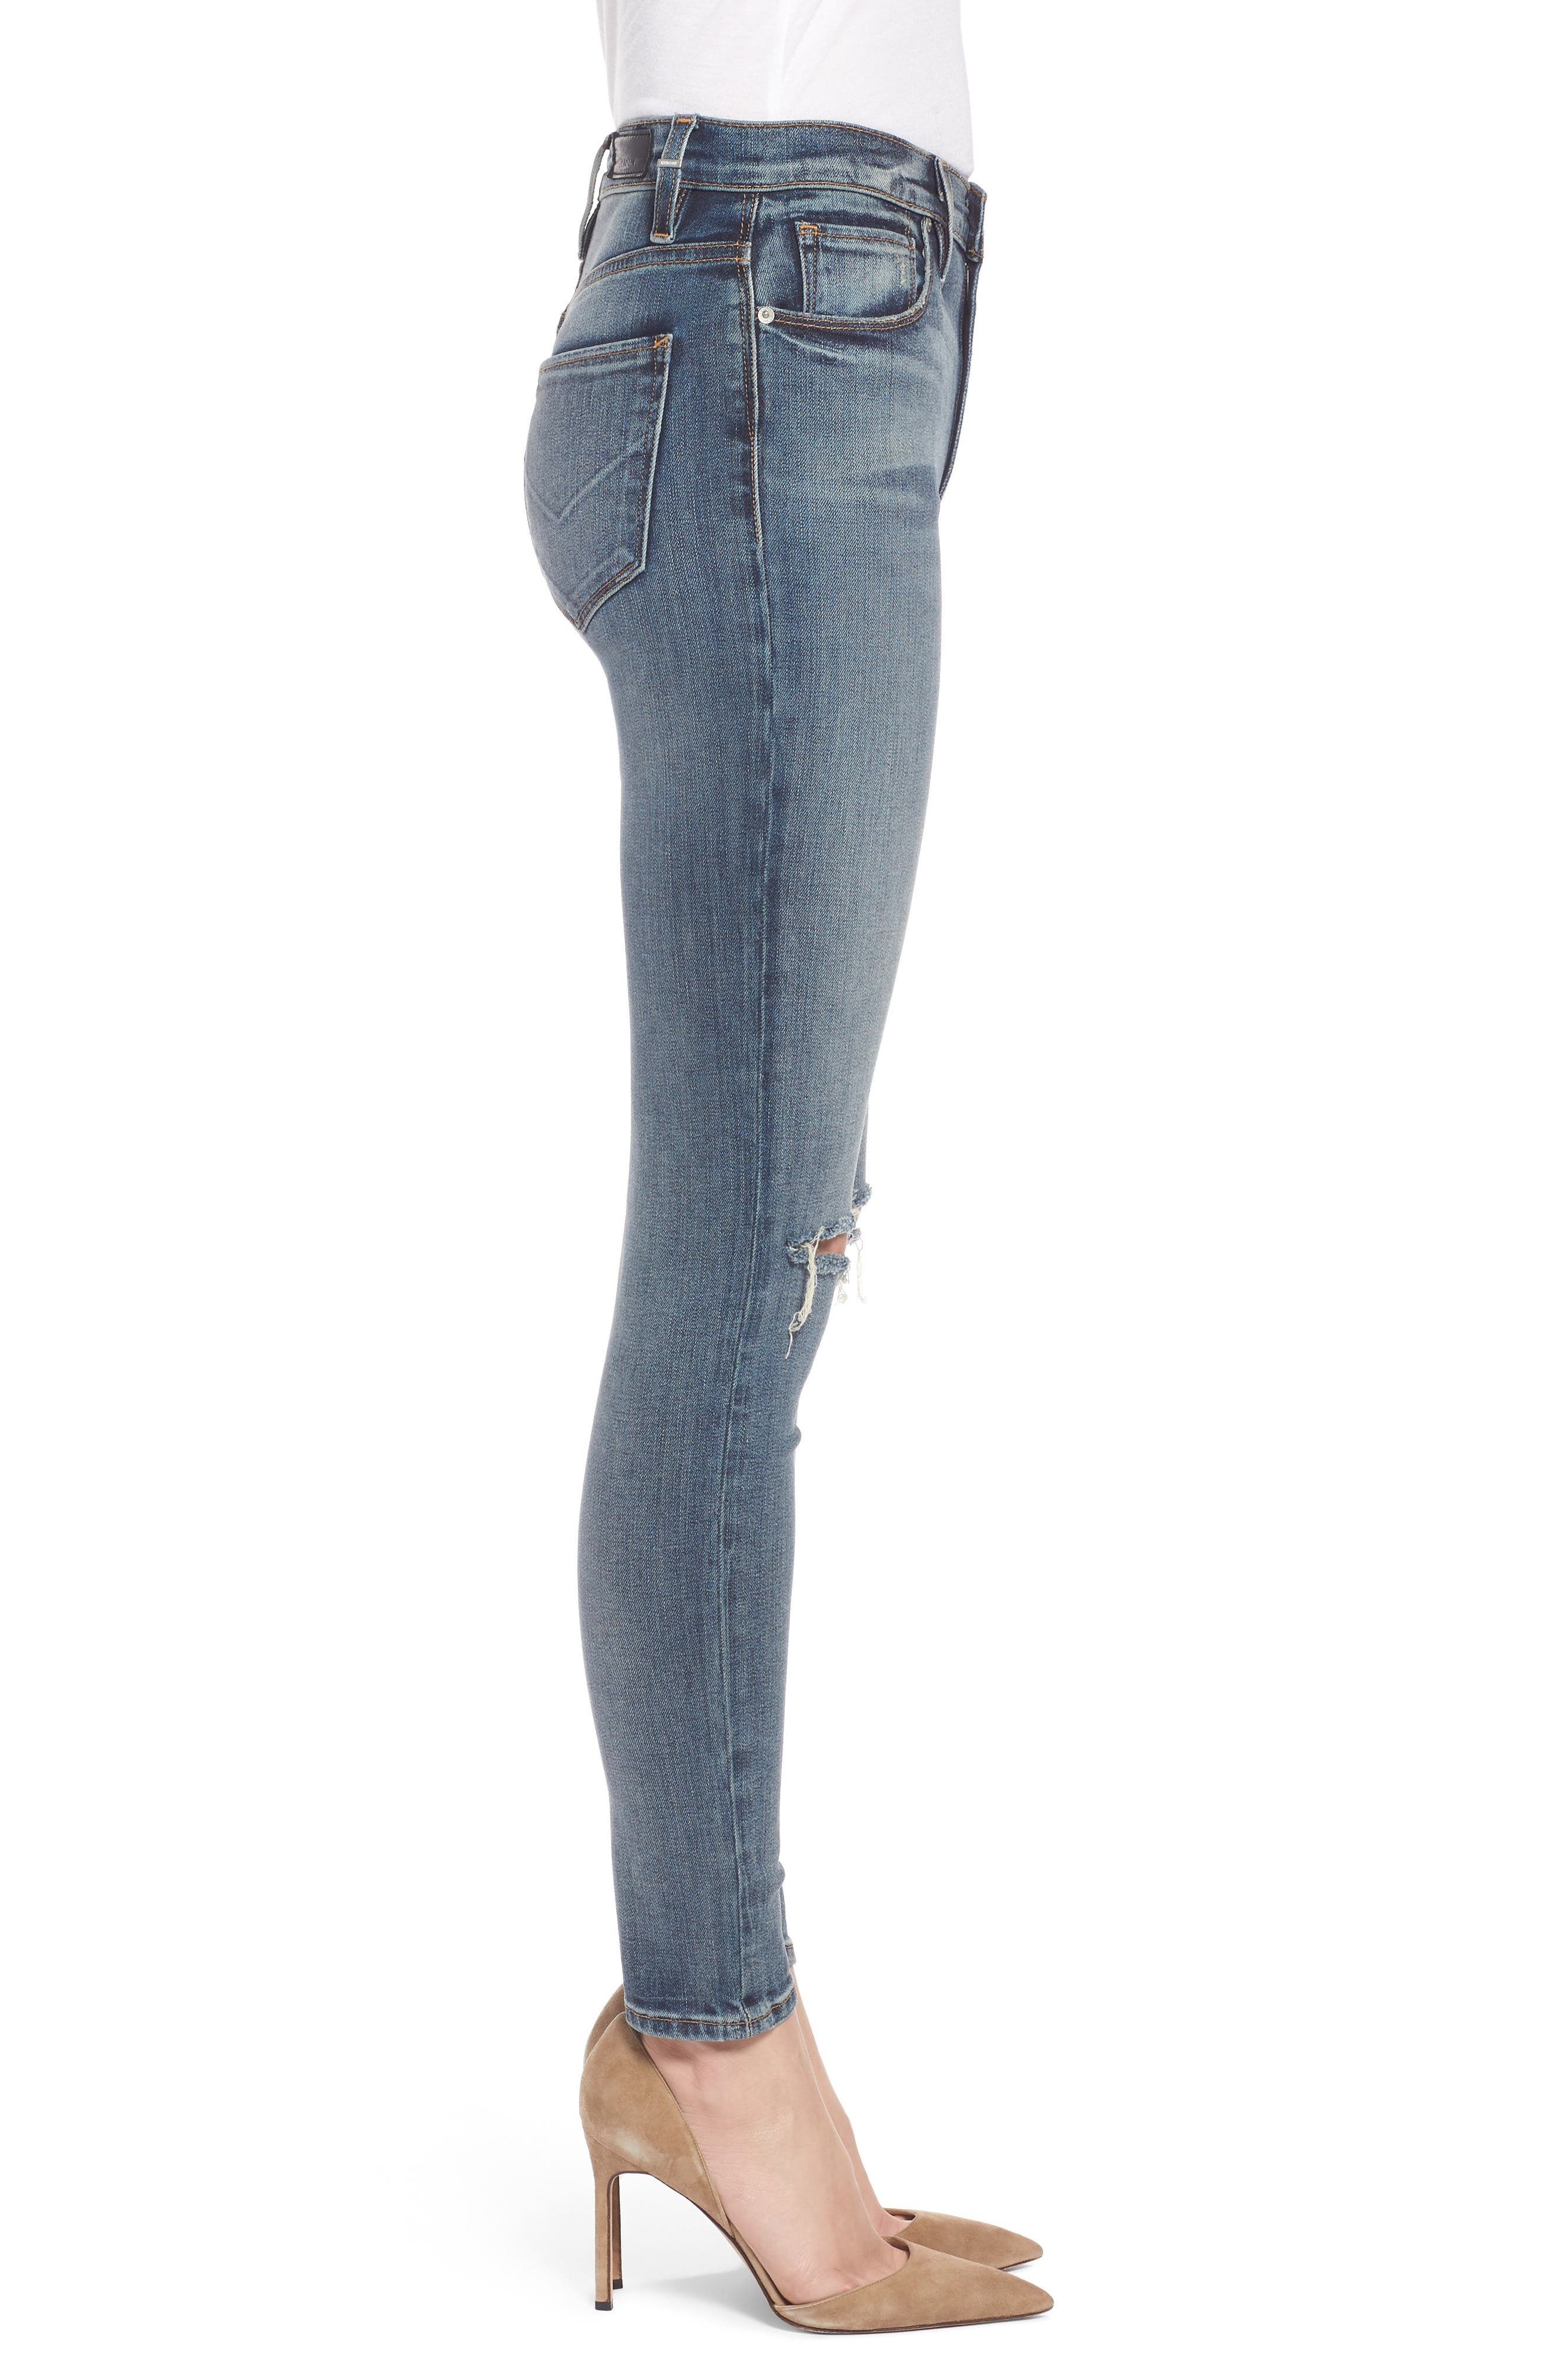 Barbara High Waist Super Skinny Jeans,                             Alternate thumbnail 3, color,                             420